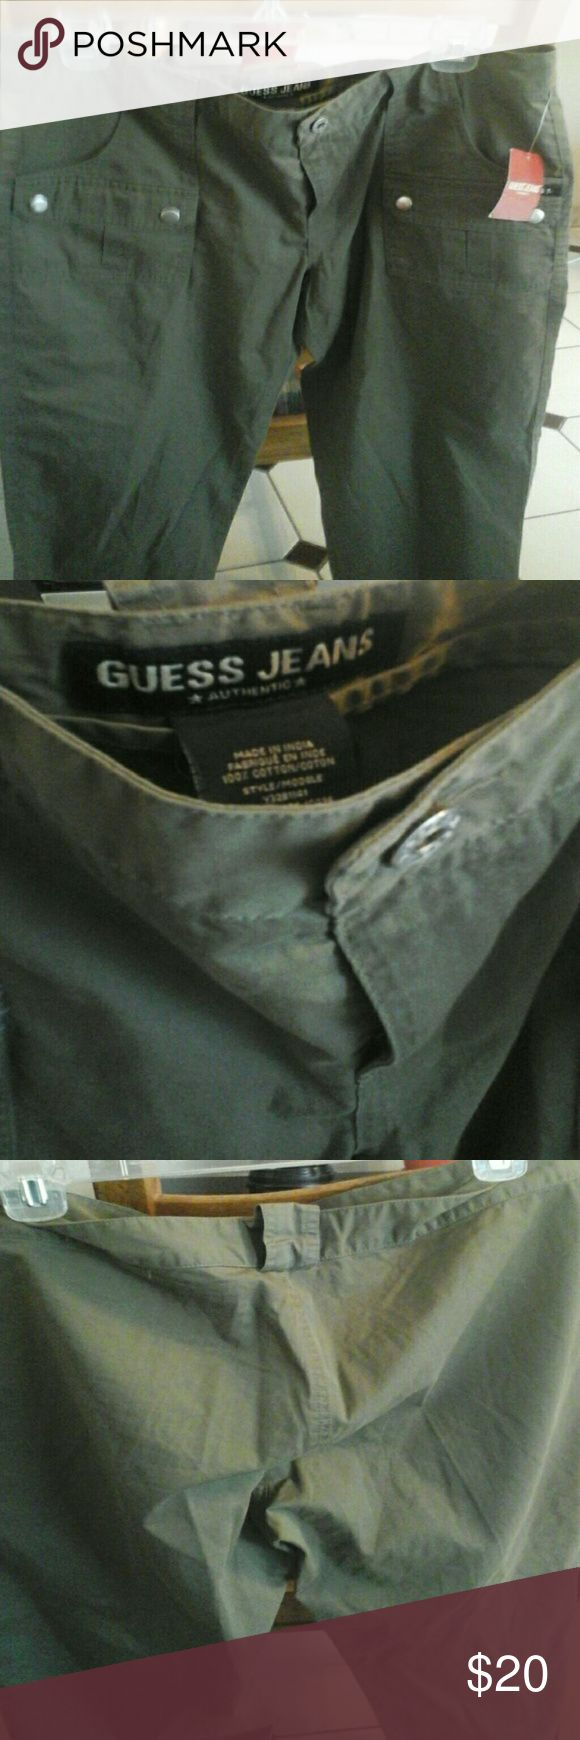 Guess Kaki Jeans NWT  size 31 Guess Kaki Jeans NWT  size 31, waist to hem measures  35,inseam is 27 Guess Jeans Ankle & Cropped